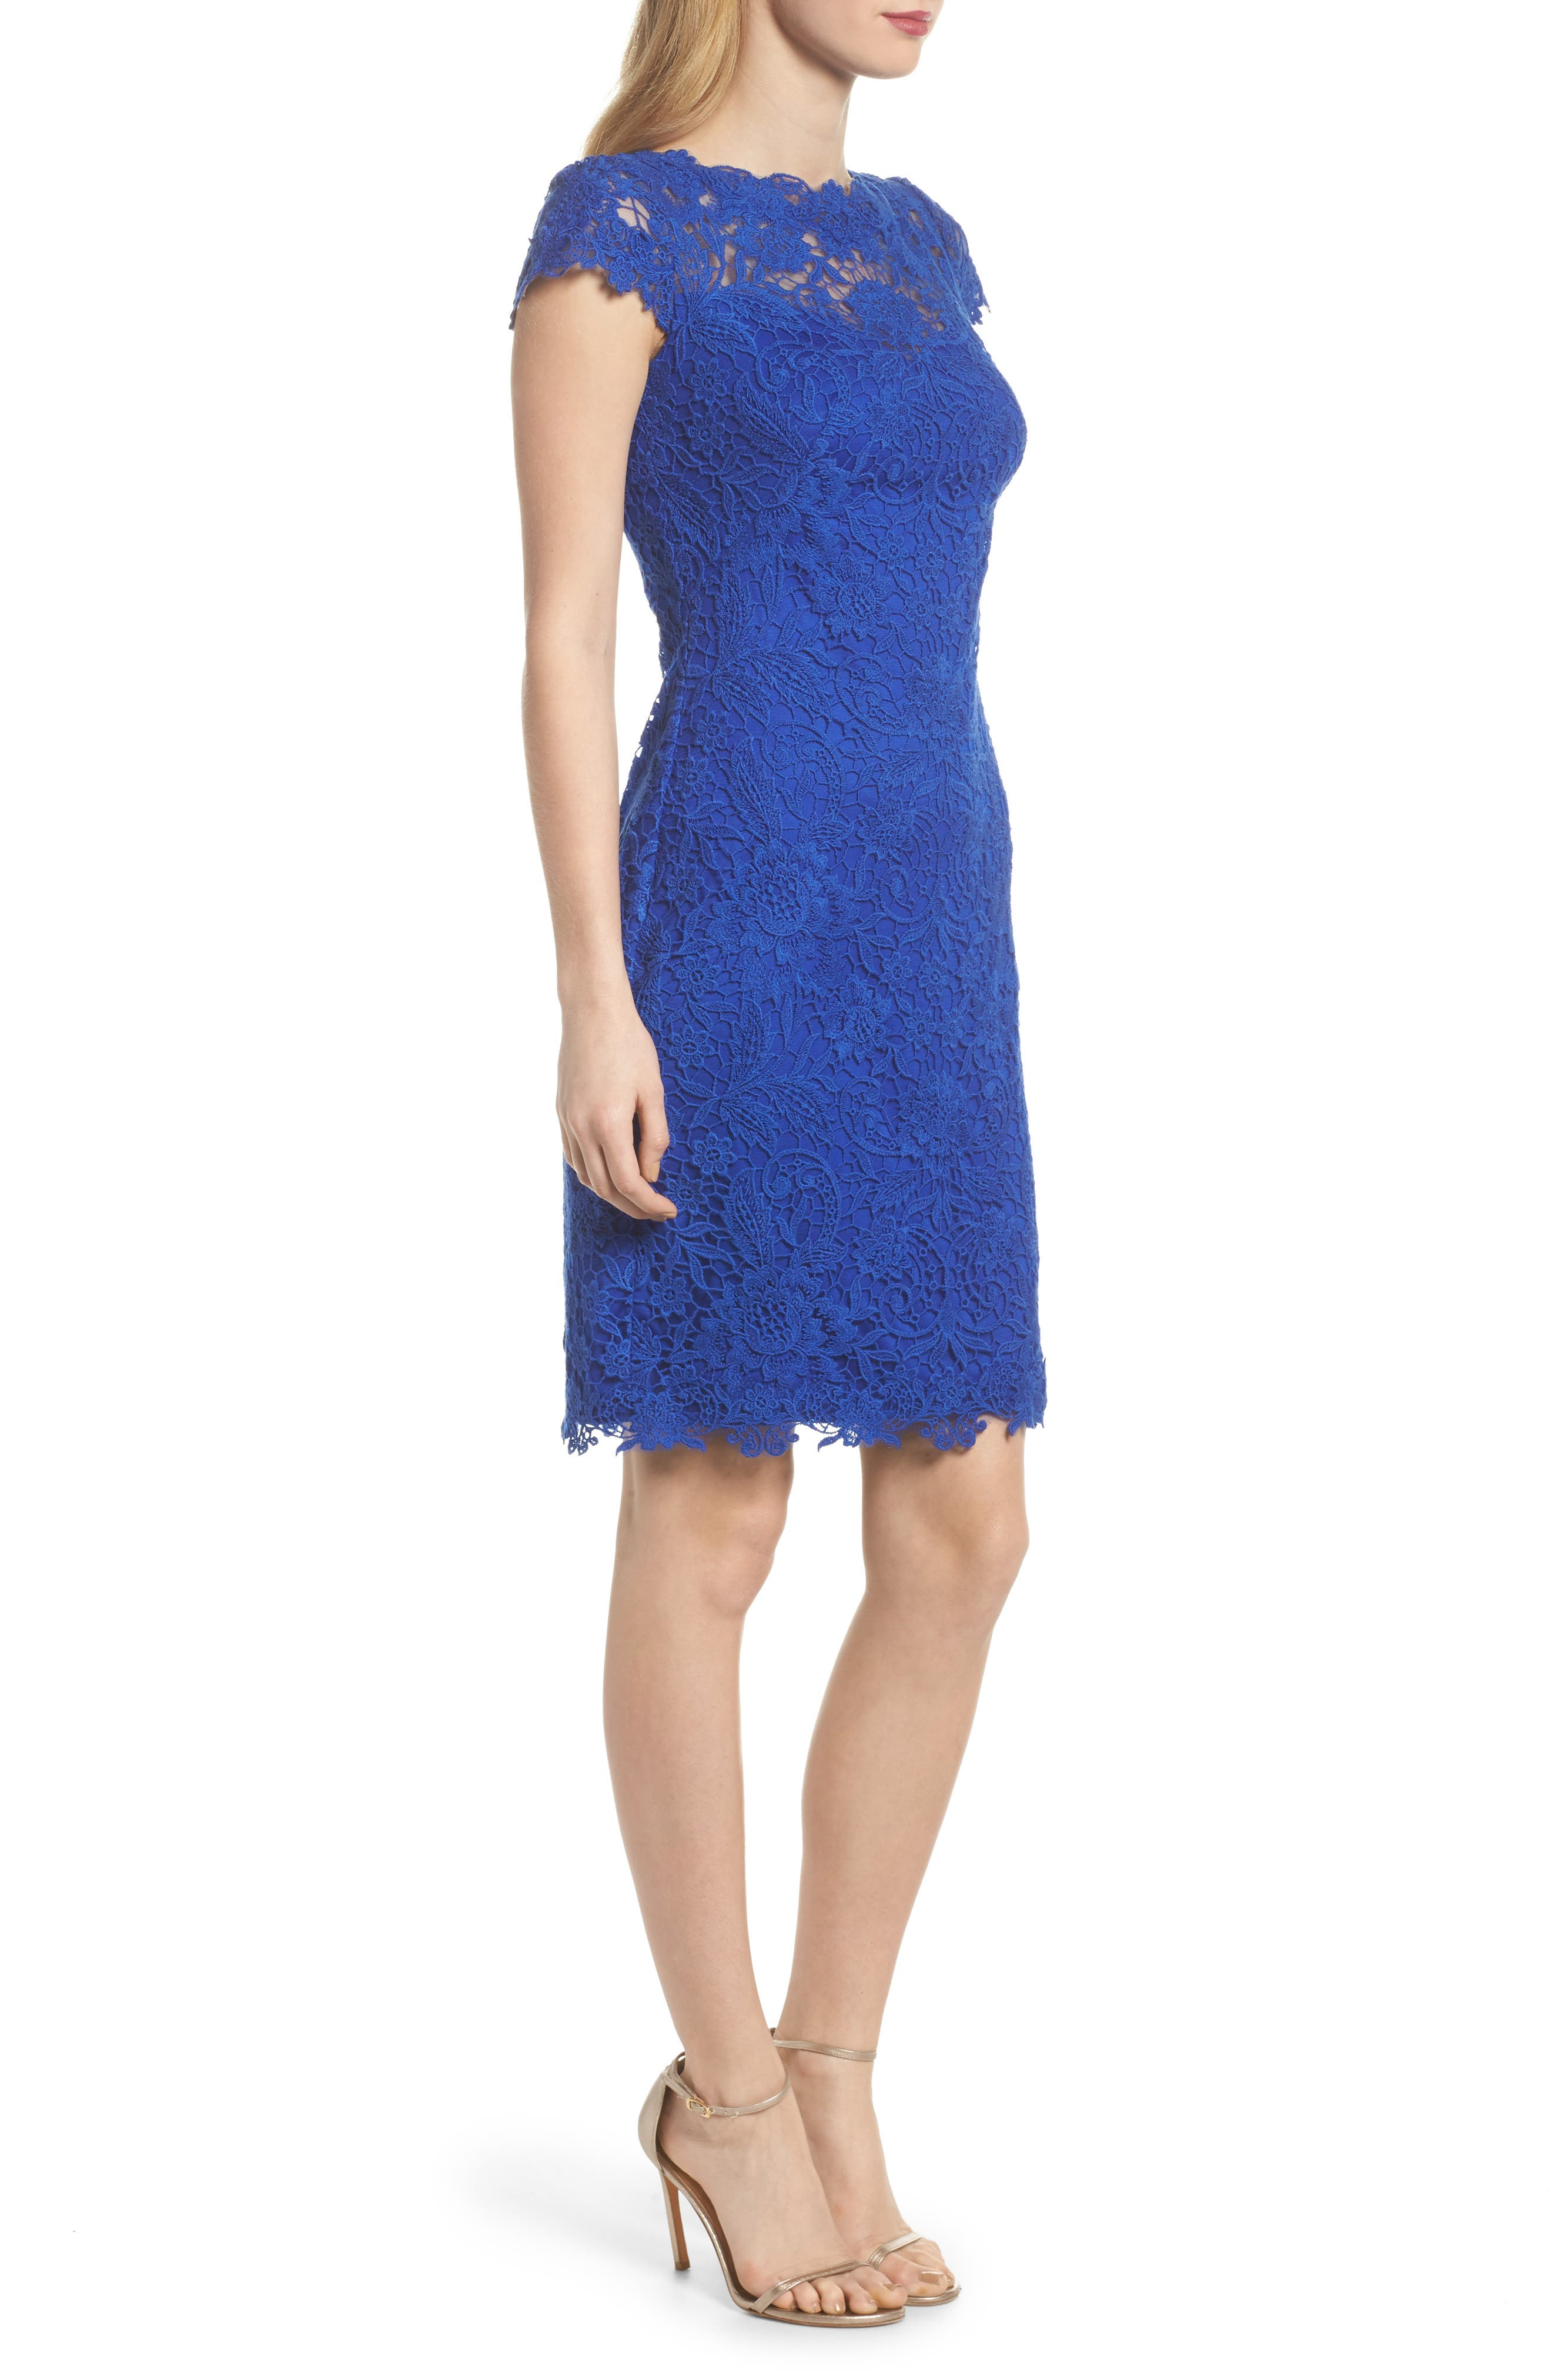 Crochet Sheath Dress,                             Alternate thumbnail 3, color,                             455